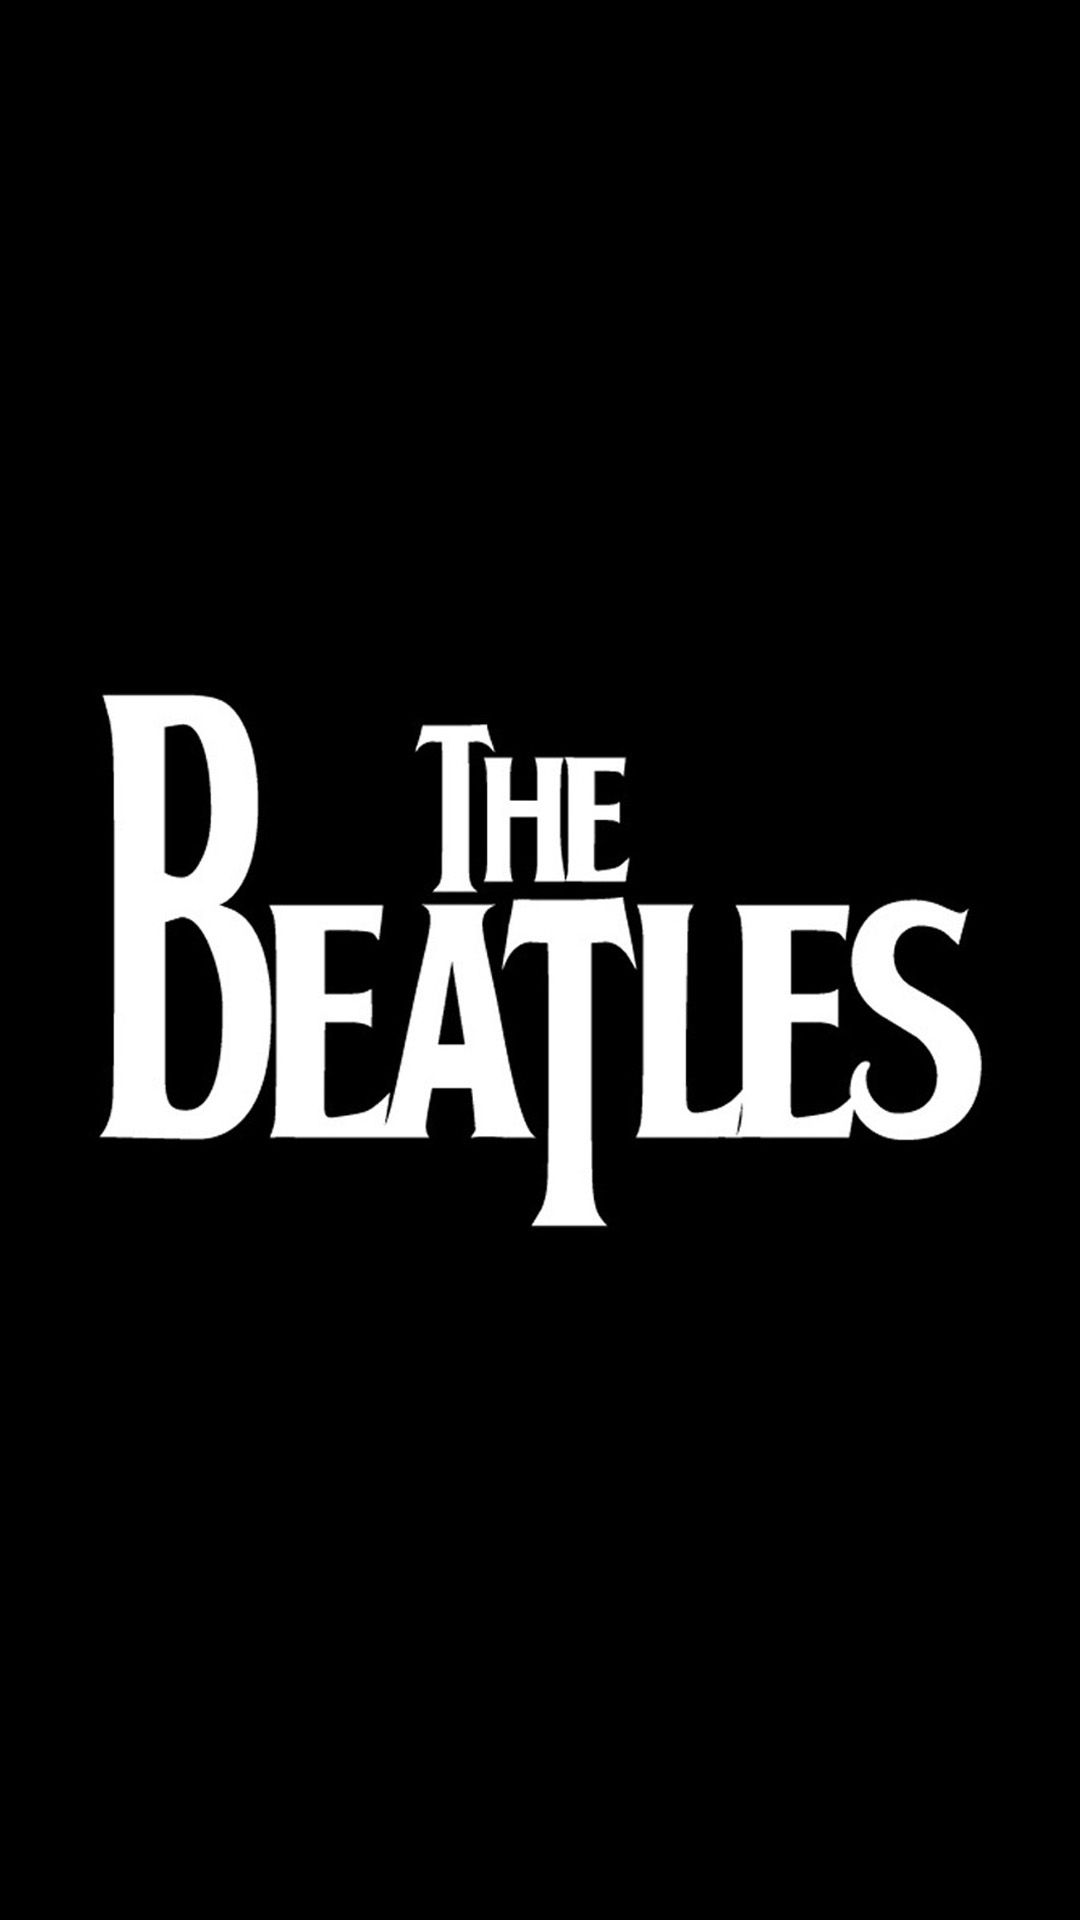 iPhone Wallpapers HD from avante.biz,  The Beatles wallpaper - Free Desktop HD iPad iPhone wallpapers